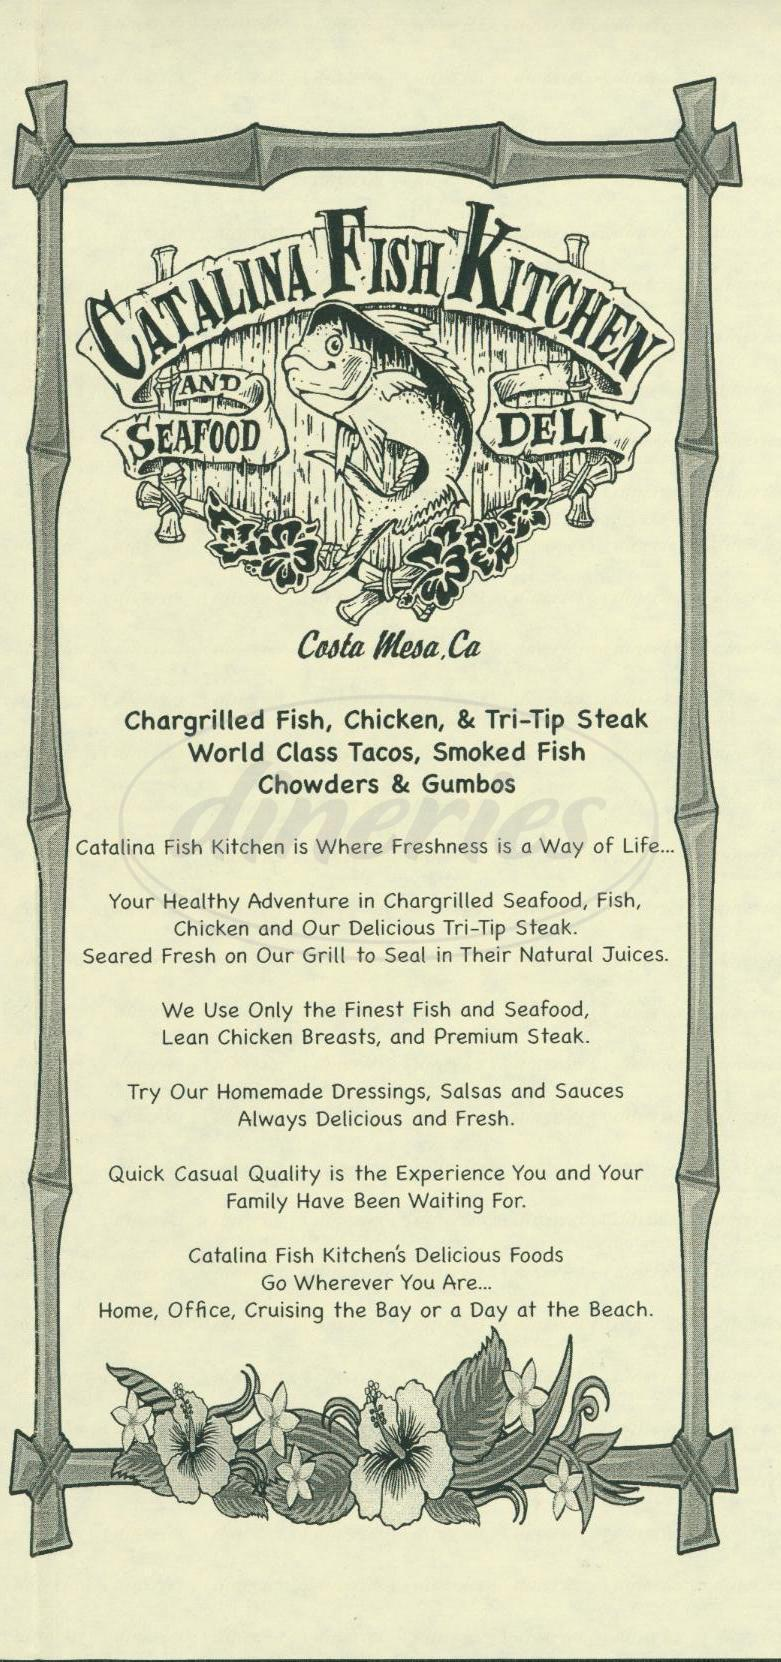 menu for Catalina Fish Kitchen